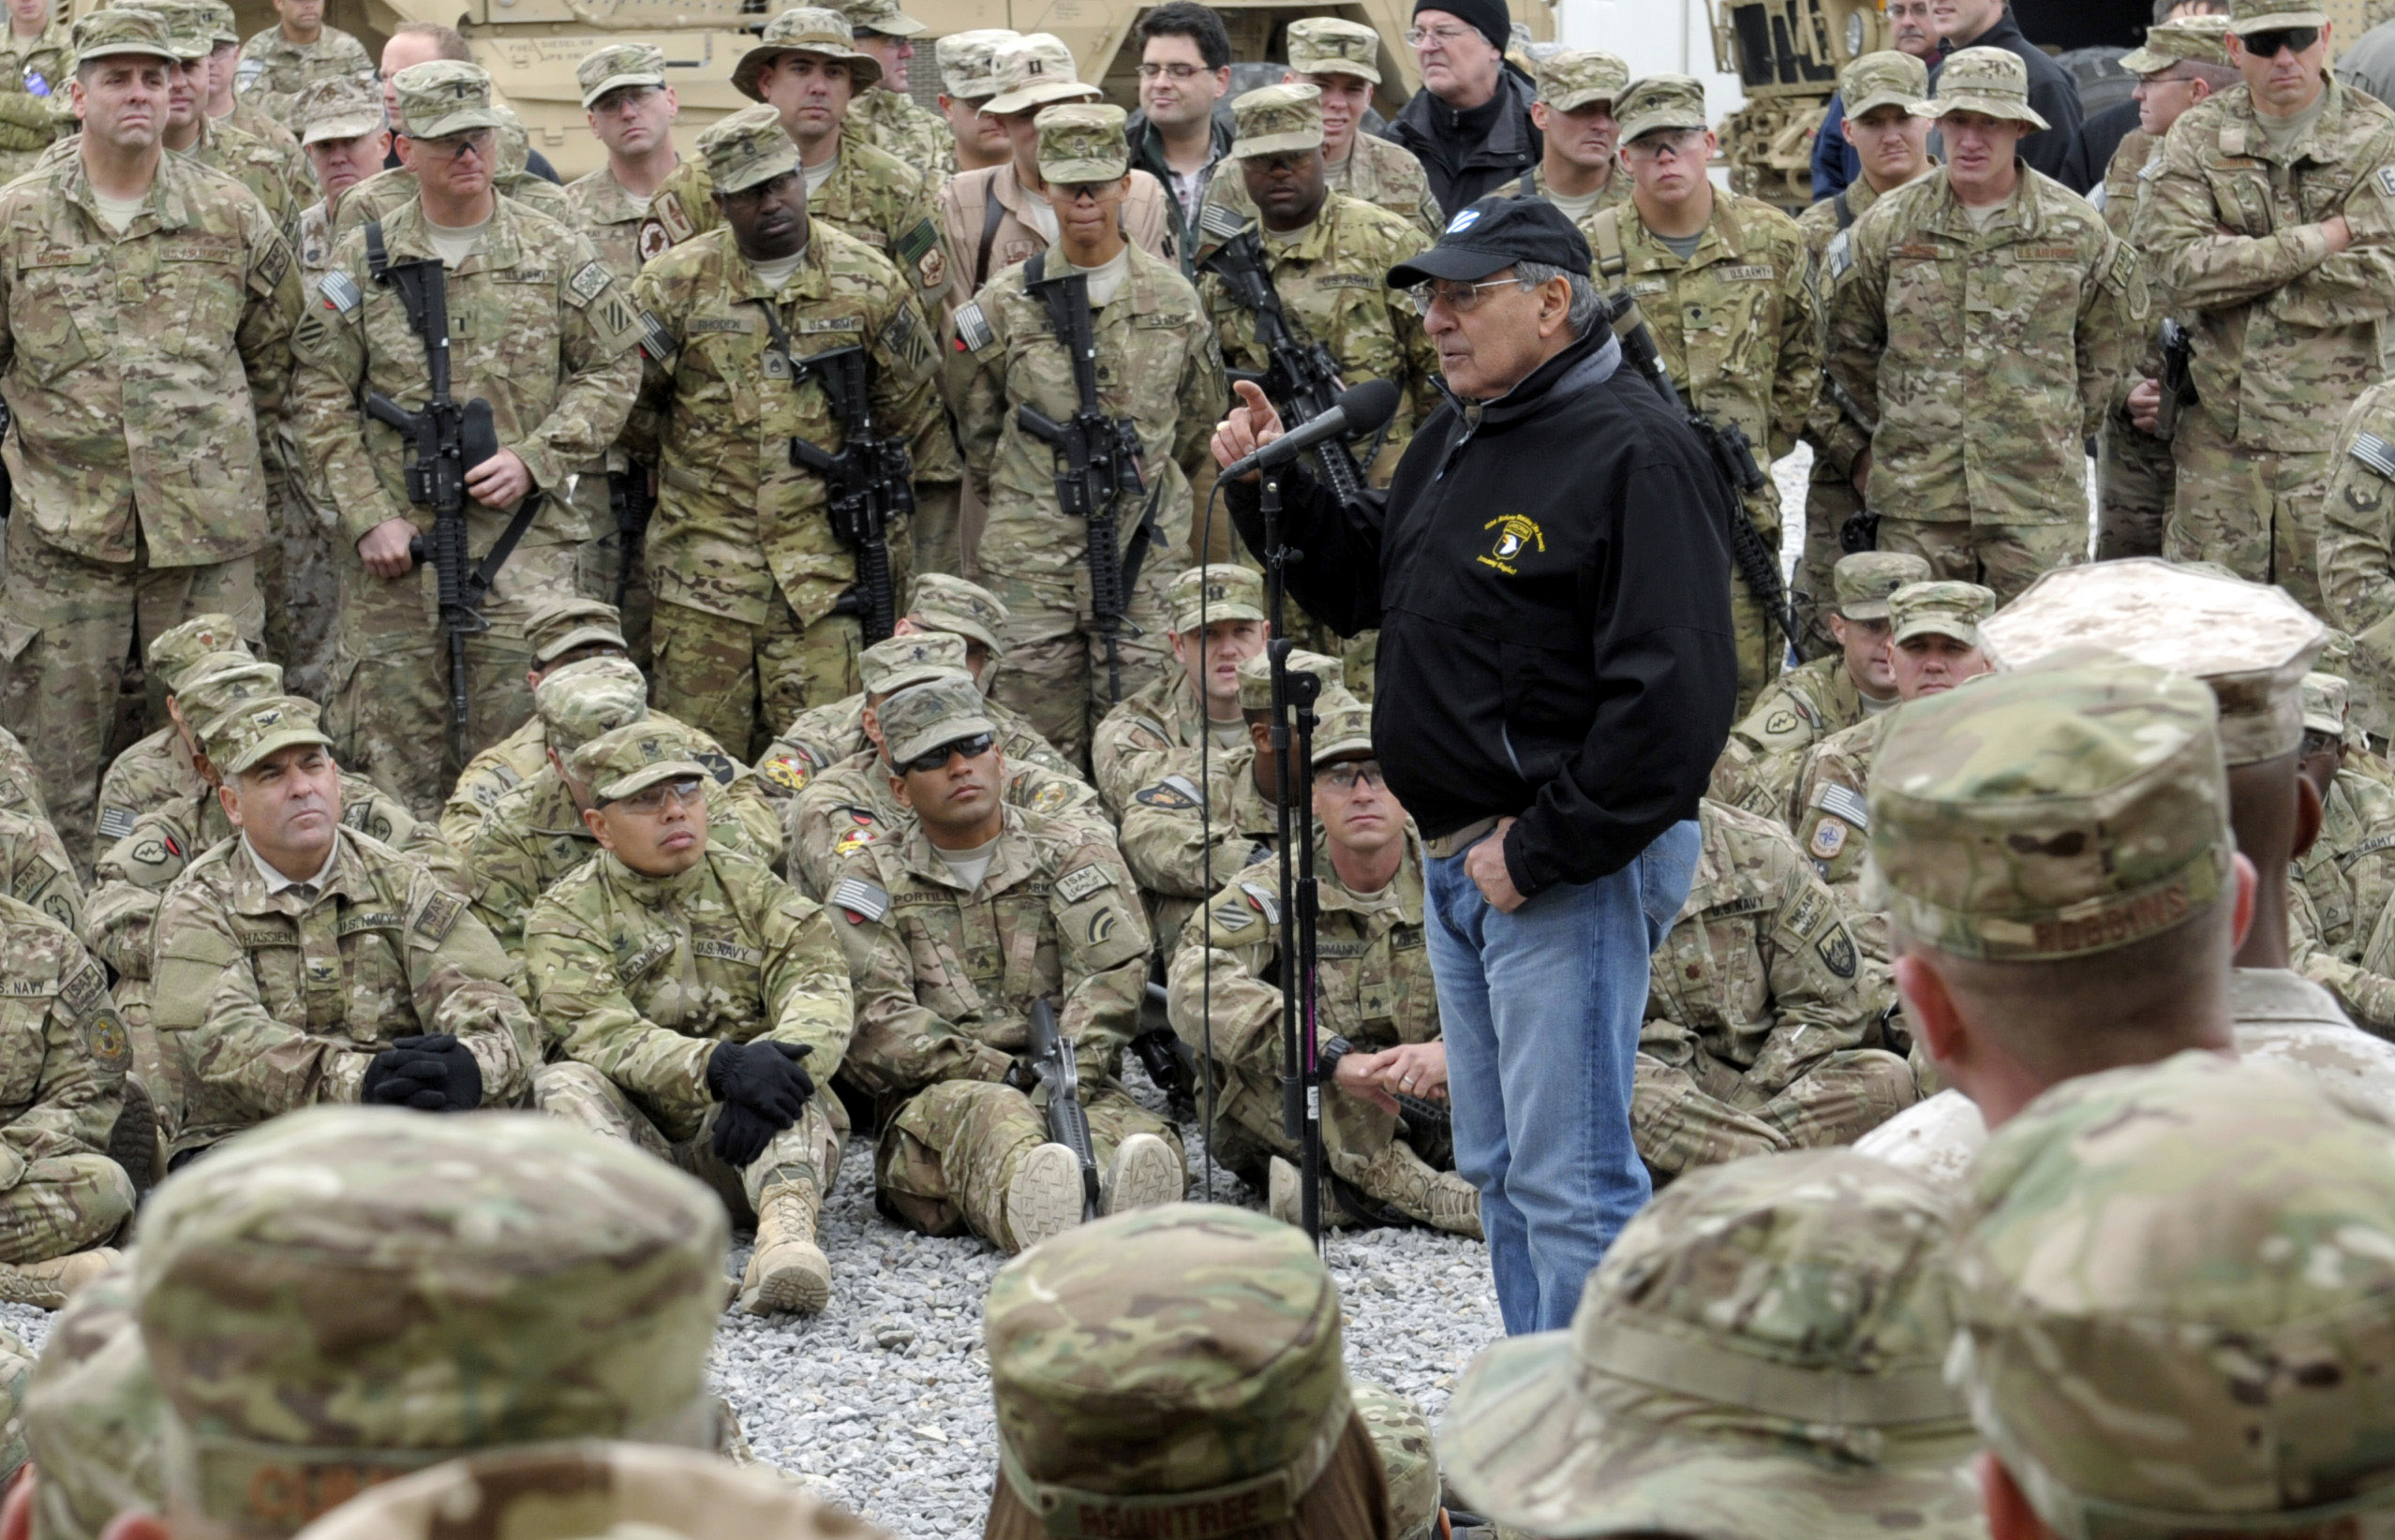 U.S. Defense Secretary Leon Panetta speaks to the troops during a visit to Kandahar Airfield on Dec. 13, 2013 in Kandahar, Afghanistan.